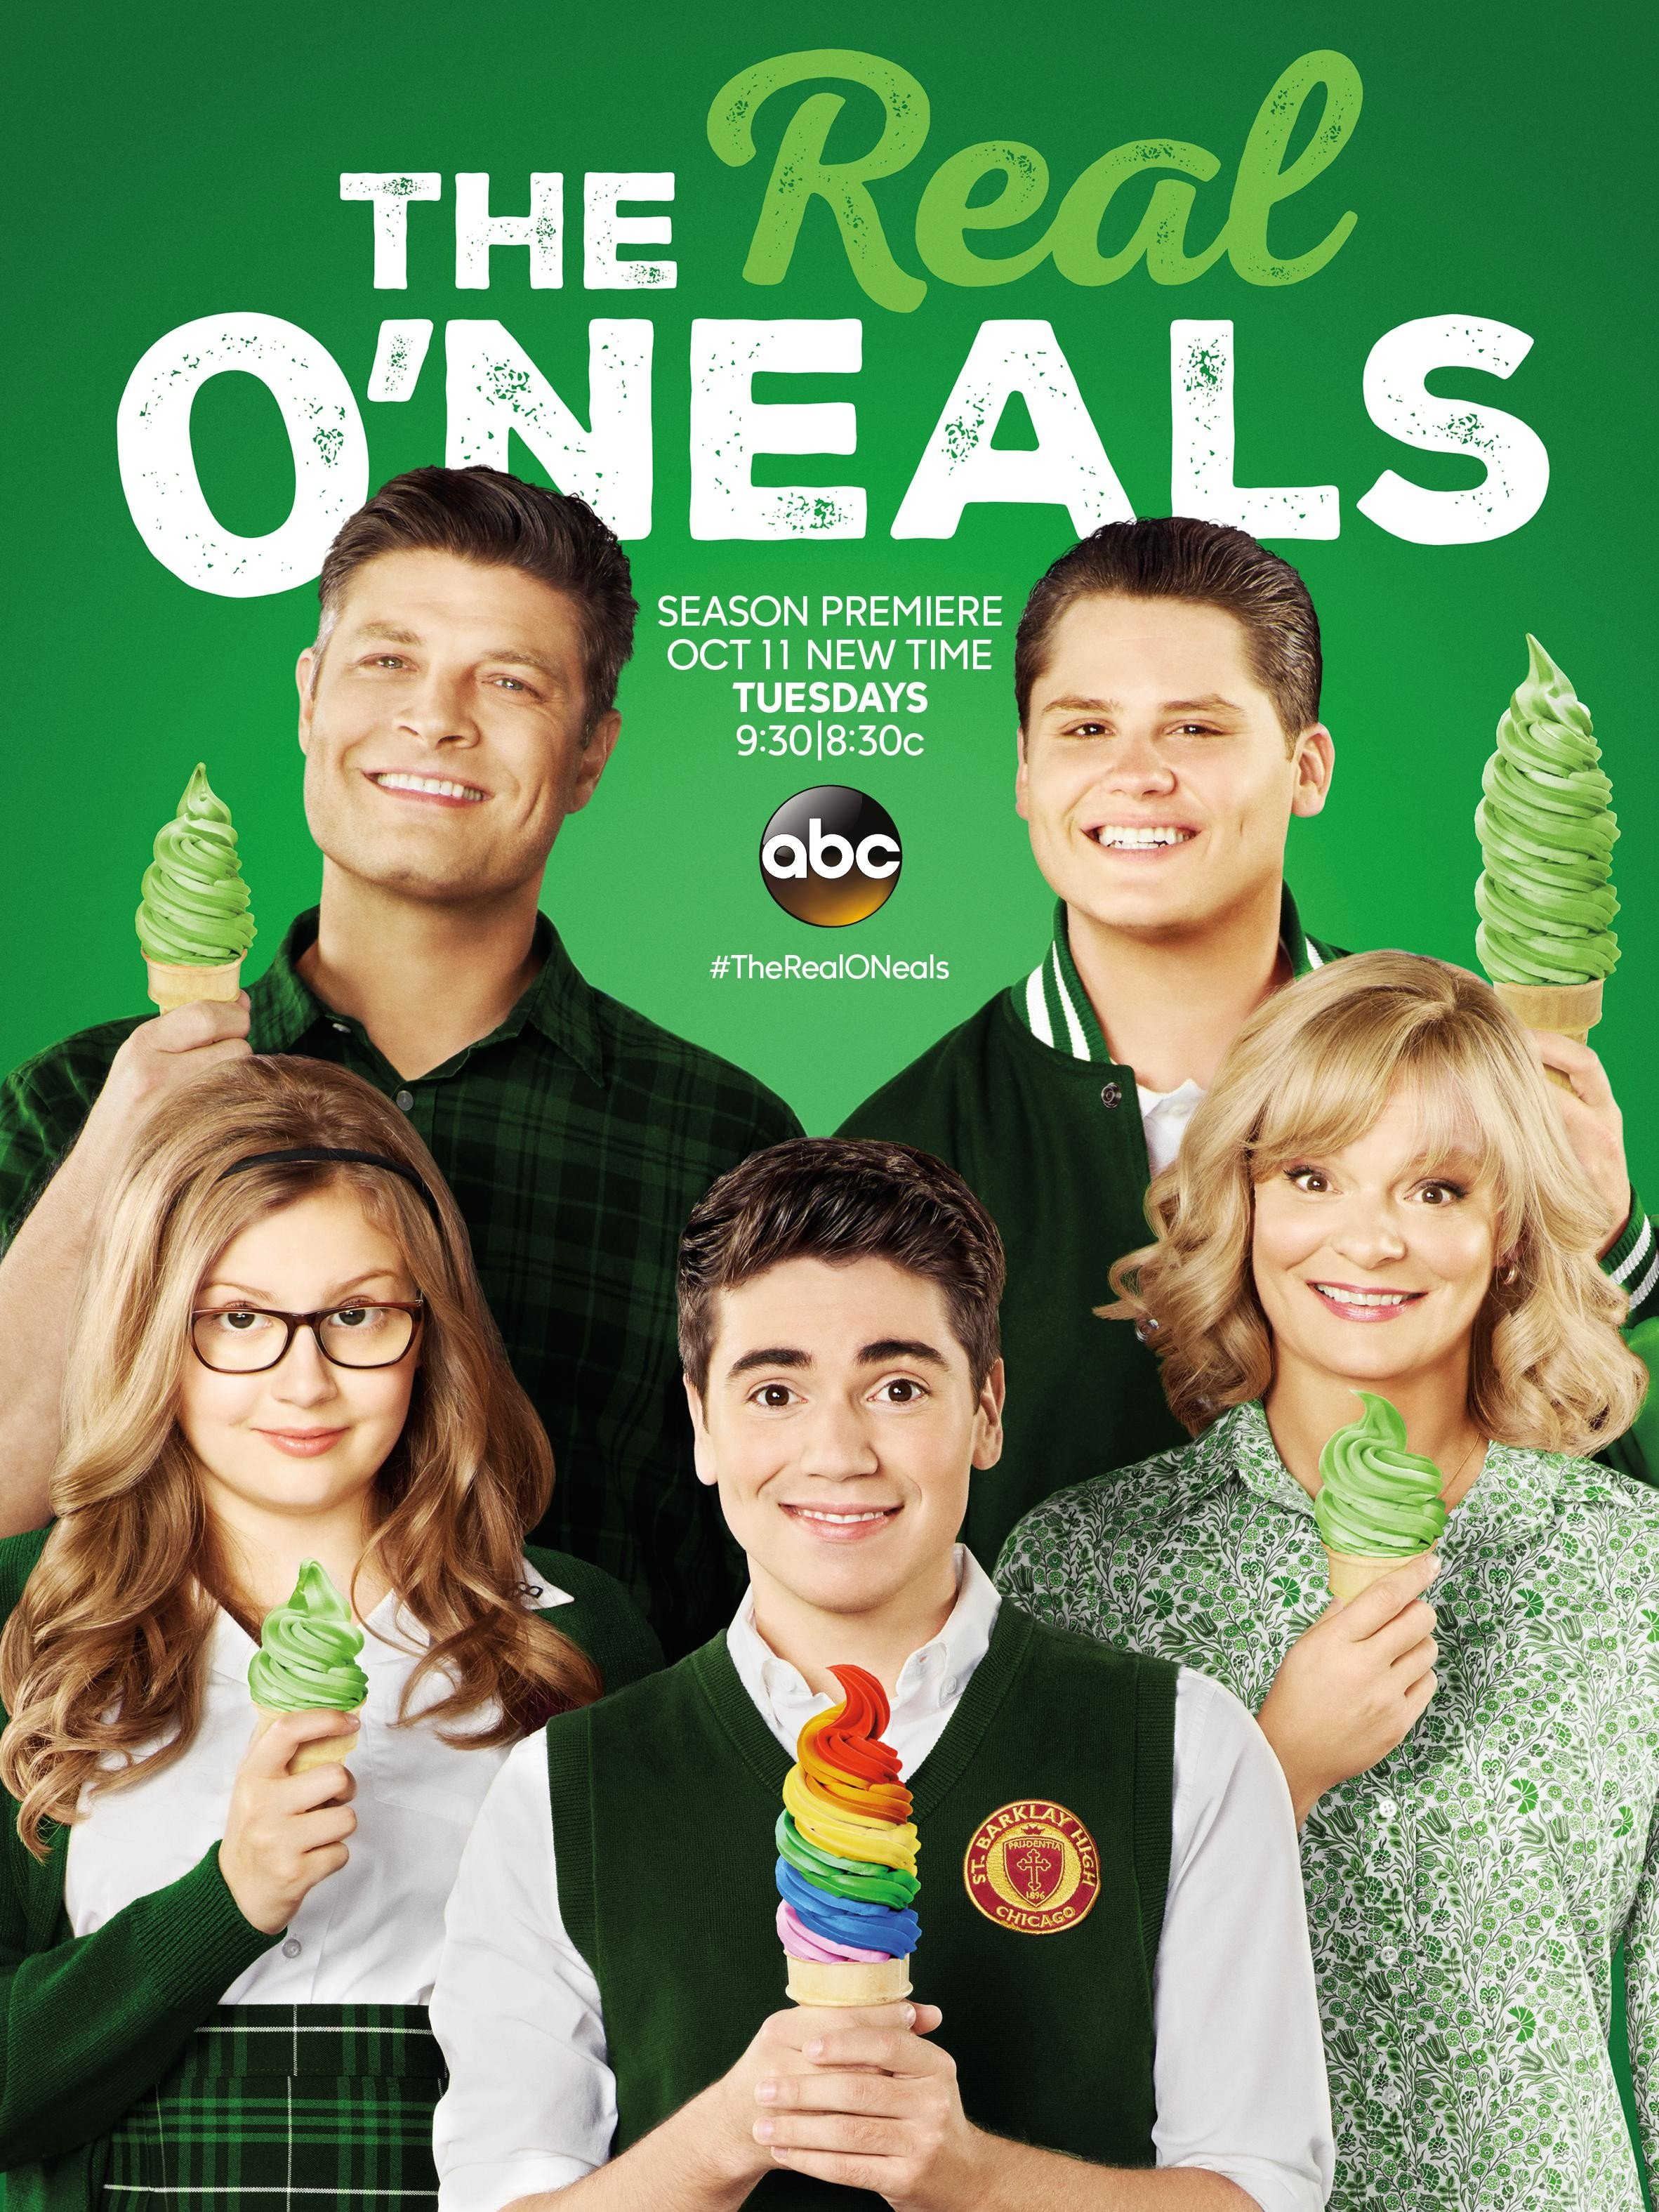 The Real O'Neals Season 2 出柜家庭 第二季